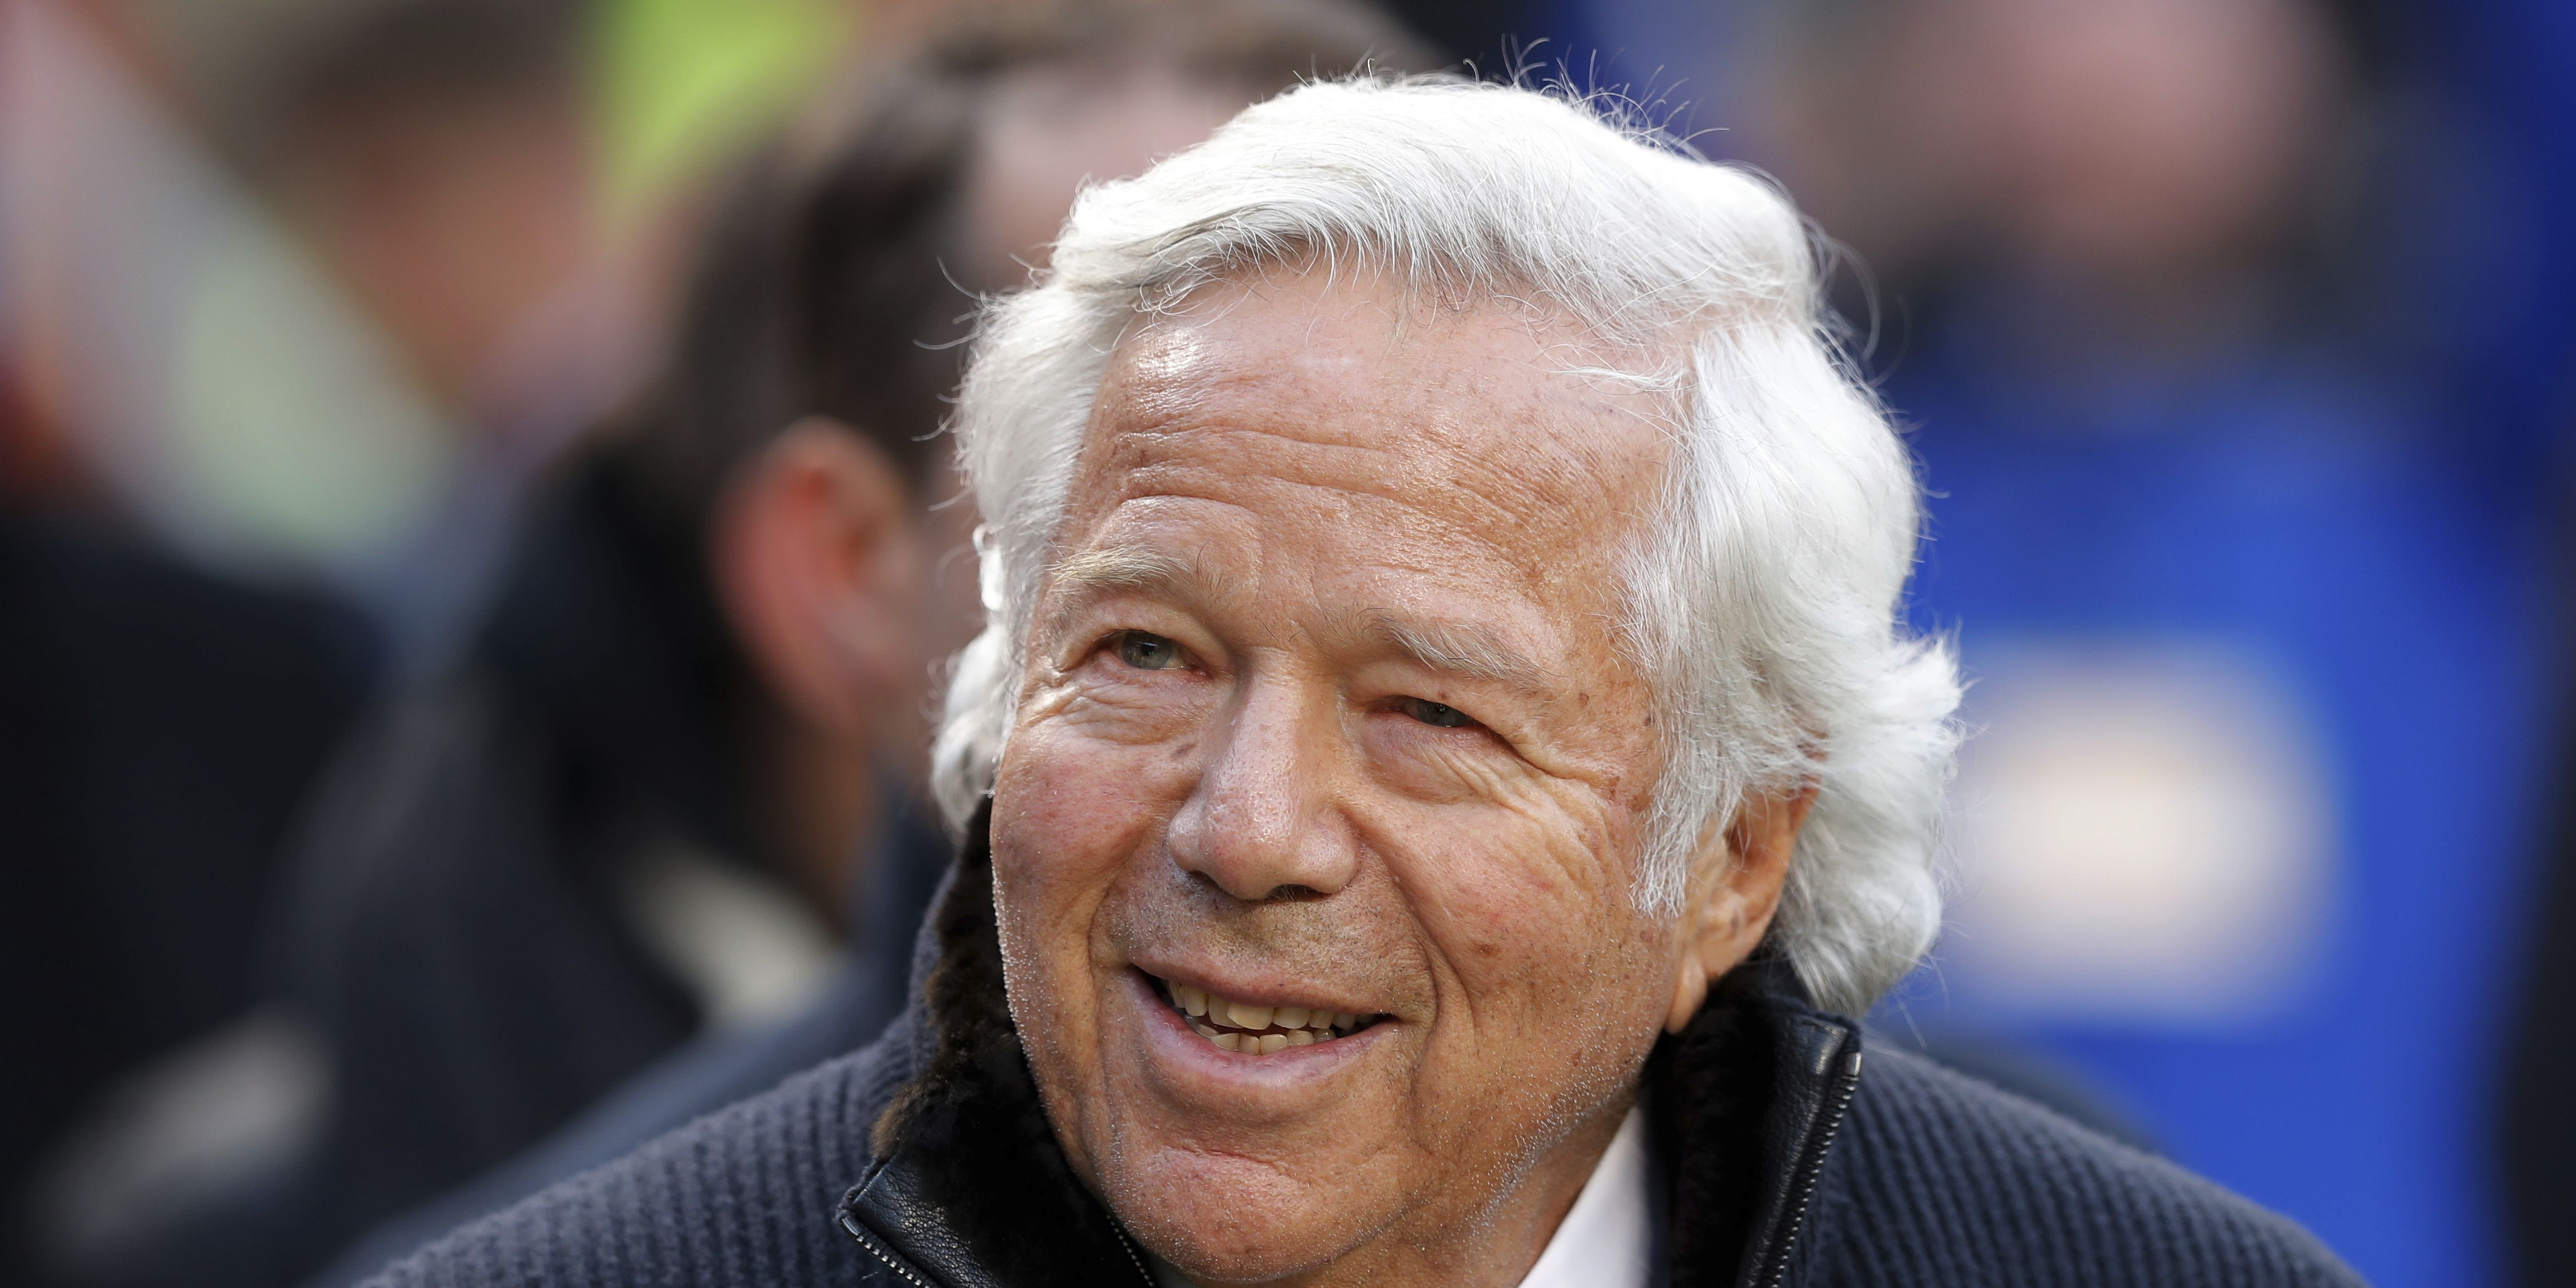 Patriots owner Robert Kraft arrested on sex crime charges in Florida